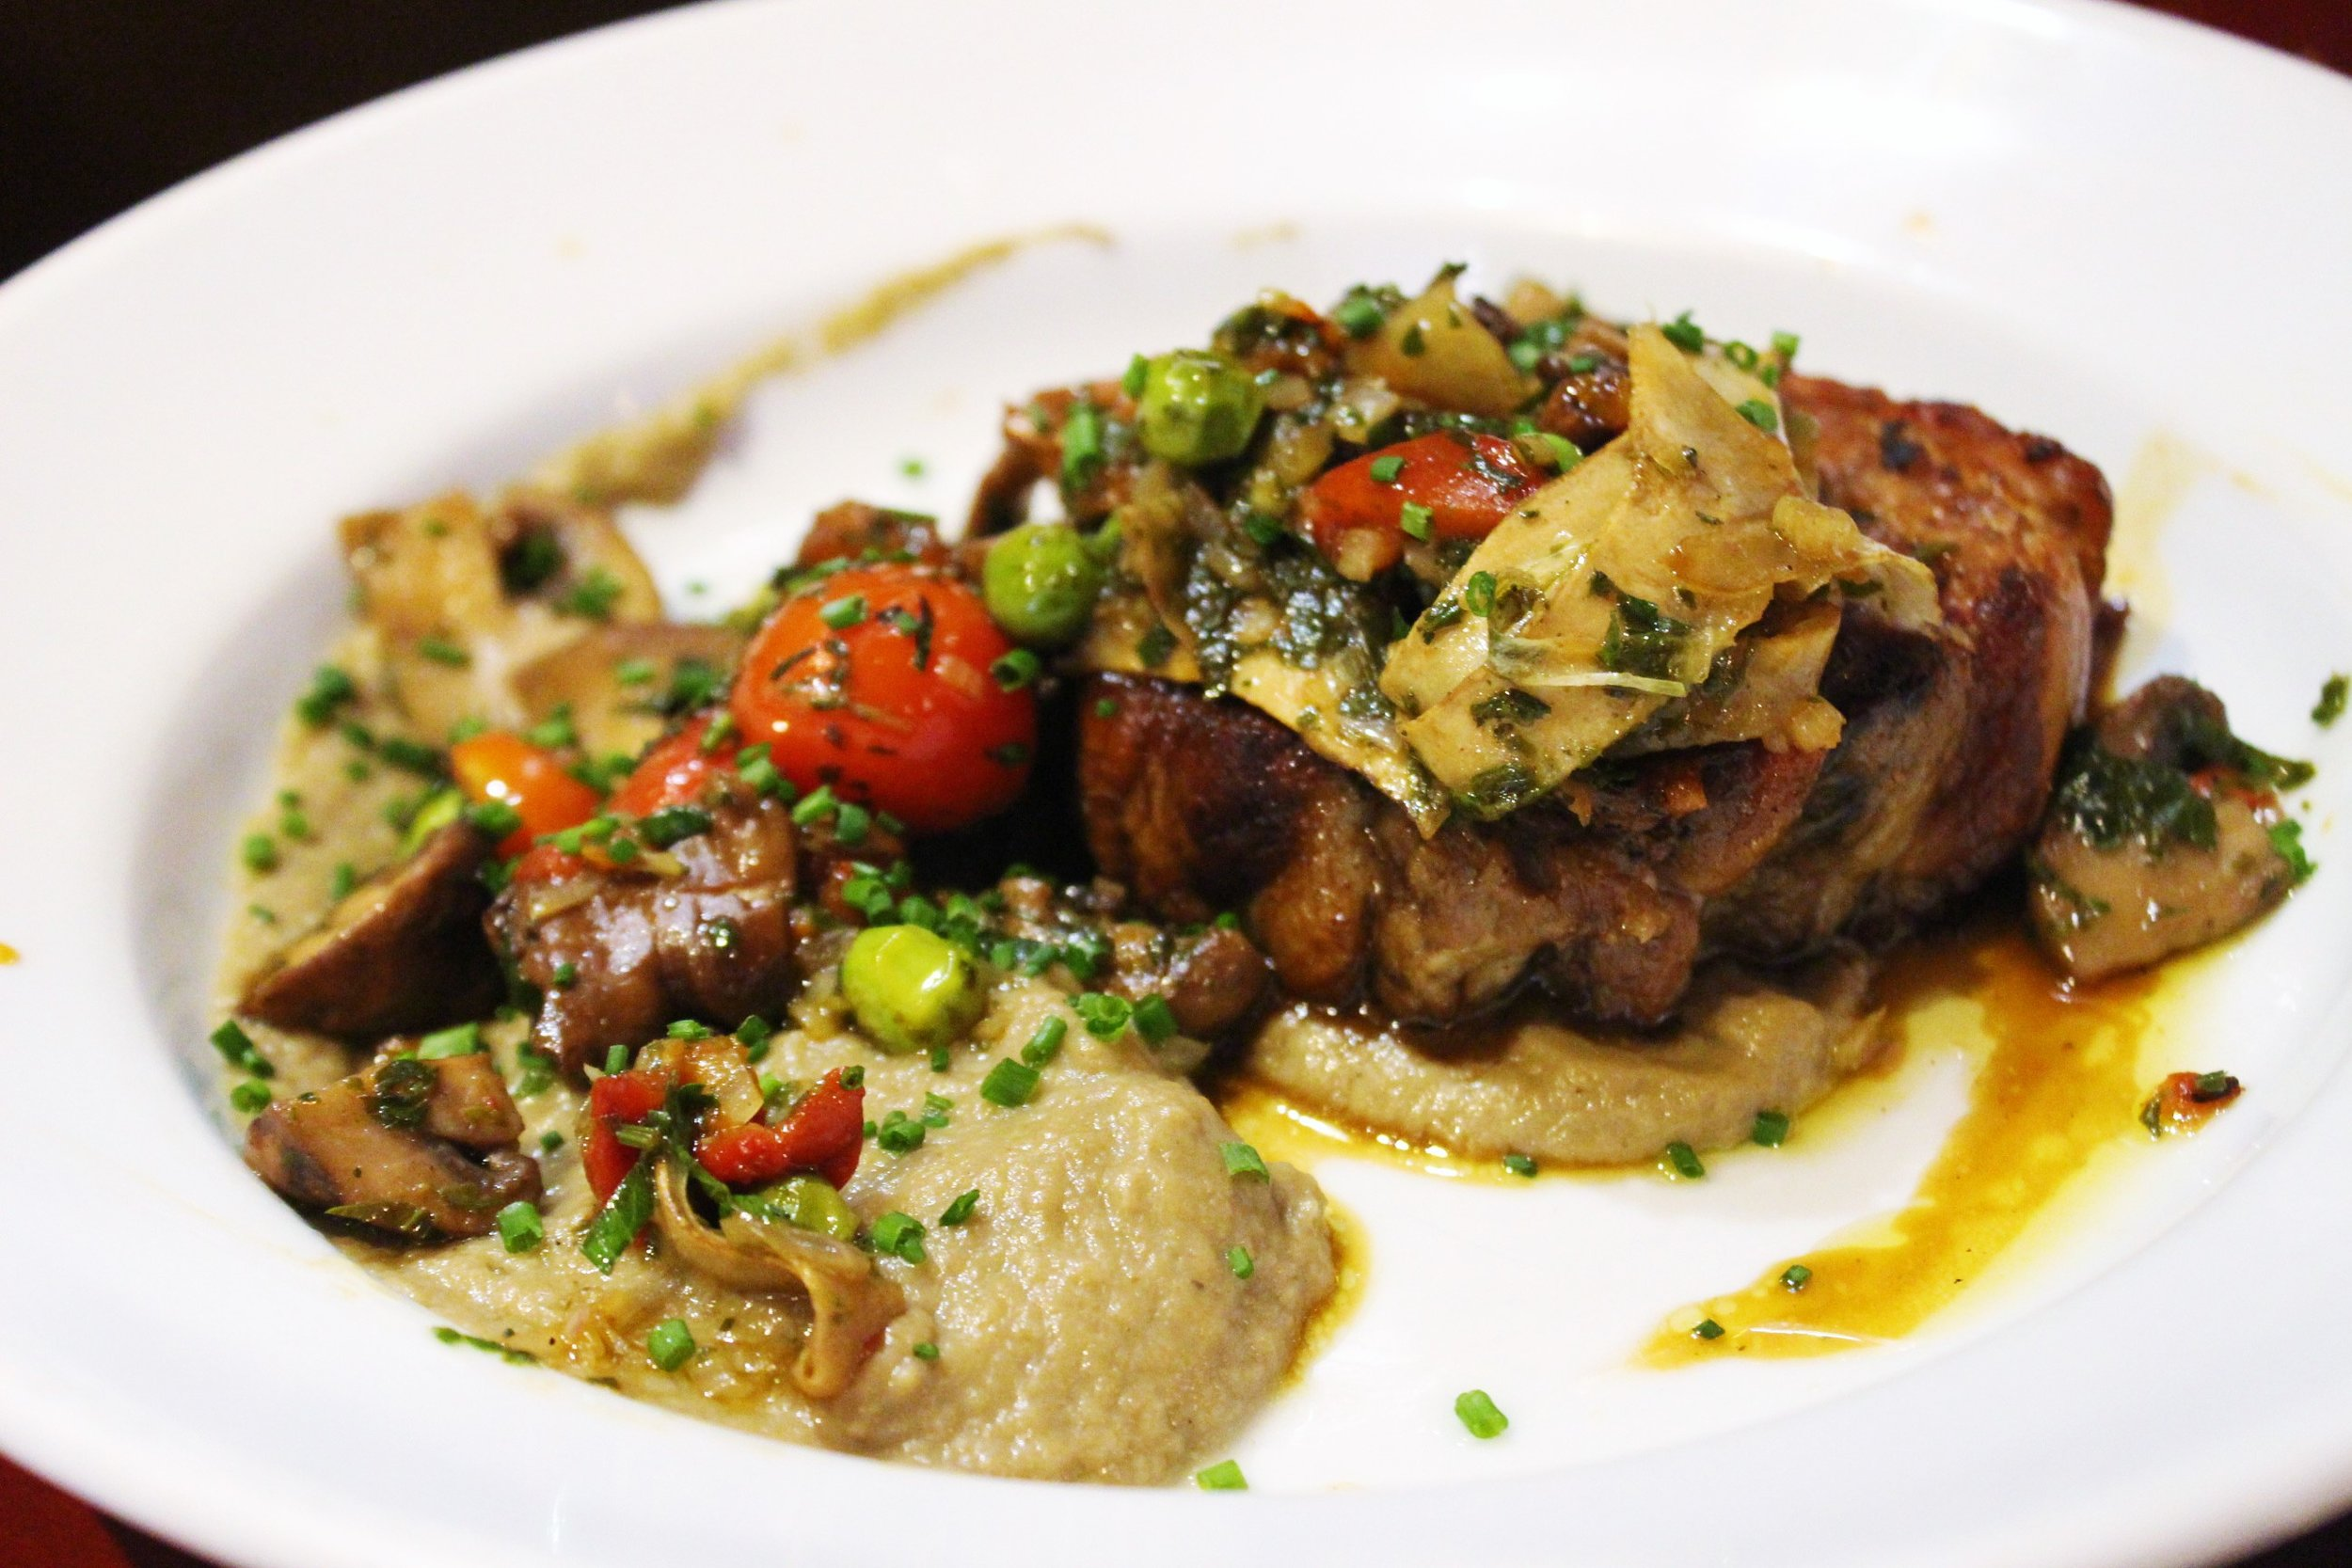 Veal Breast Confit, Eggplant Caviar, Fried Artichokes and Mushrooms